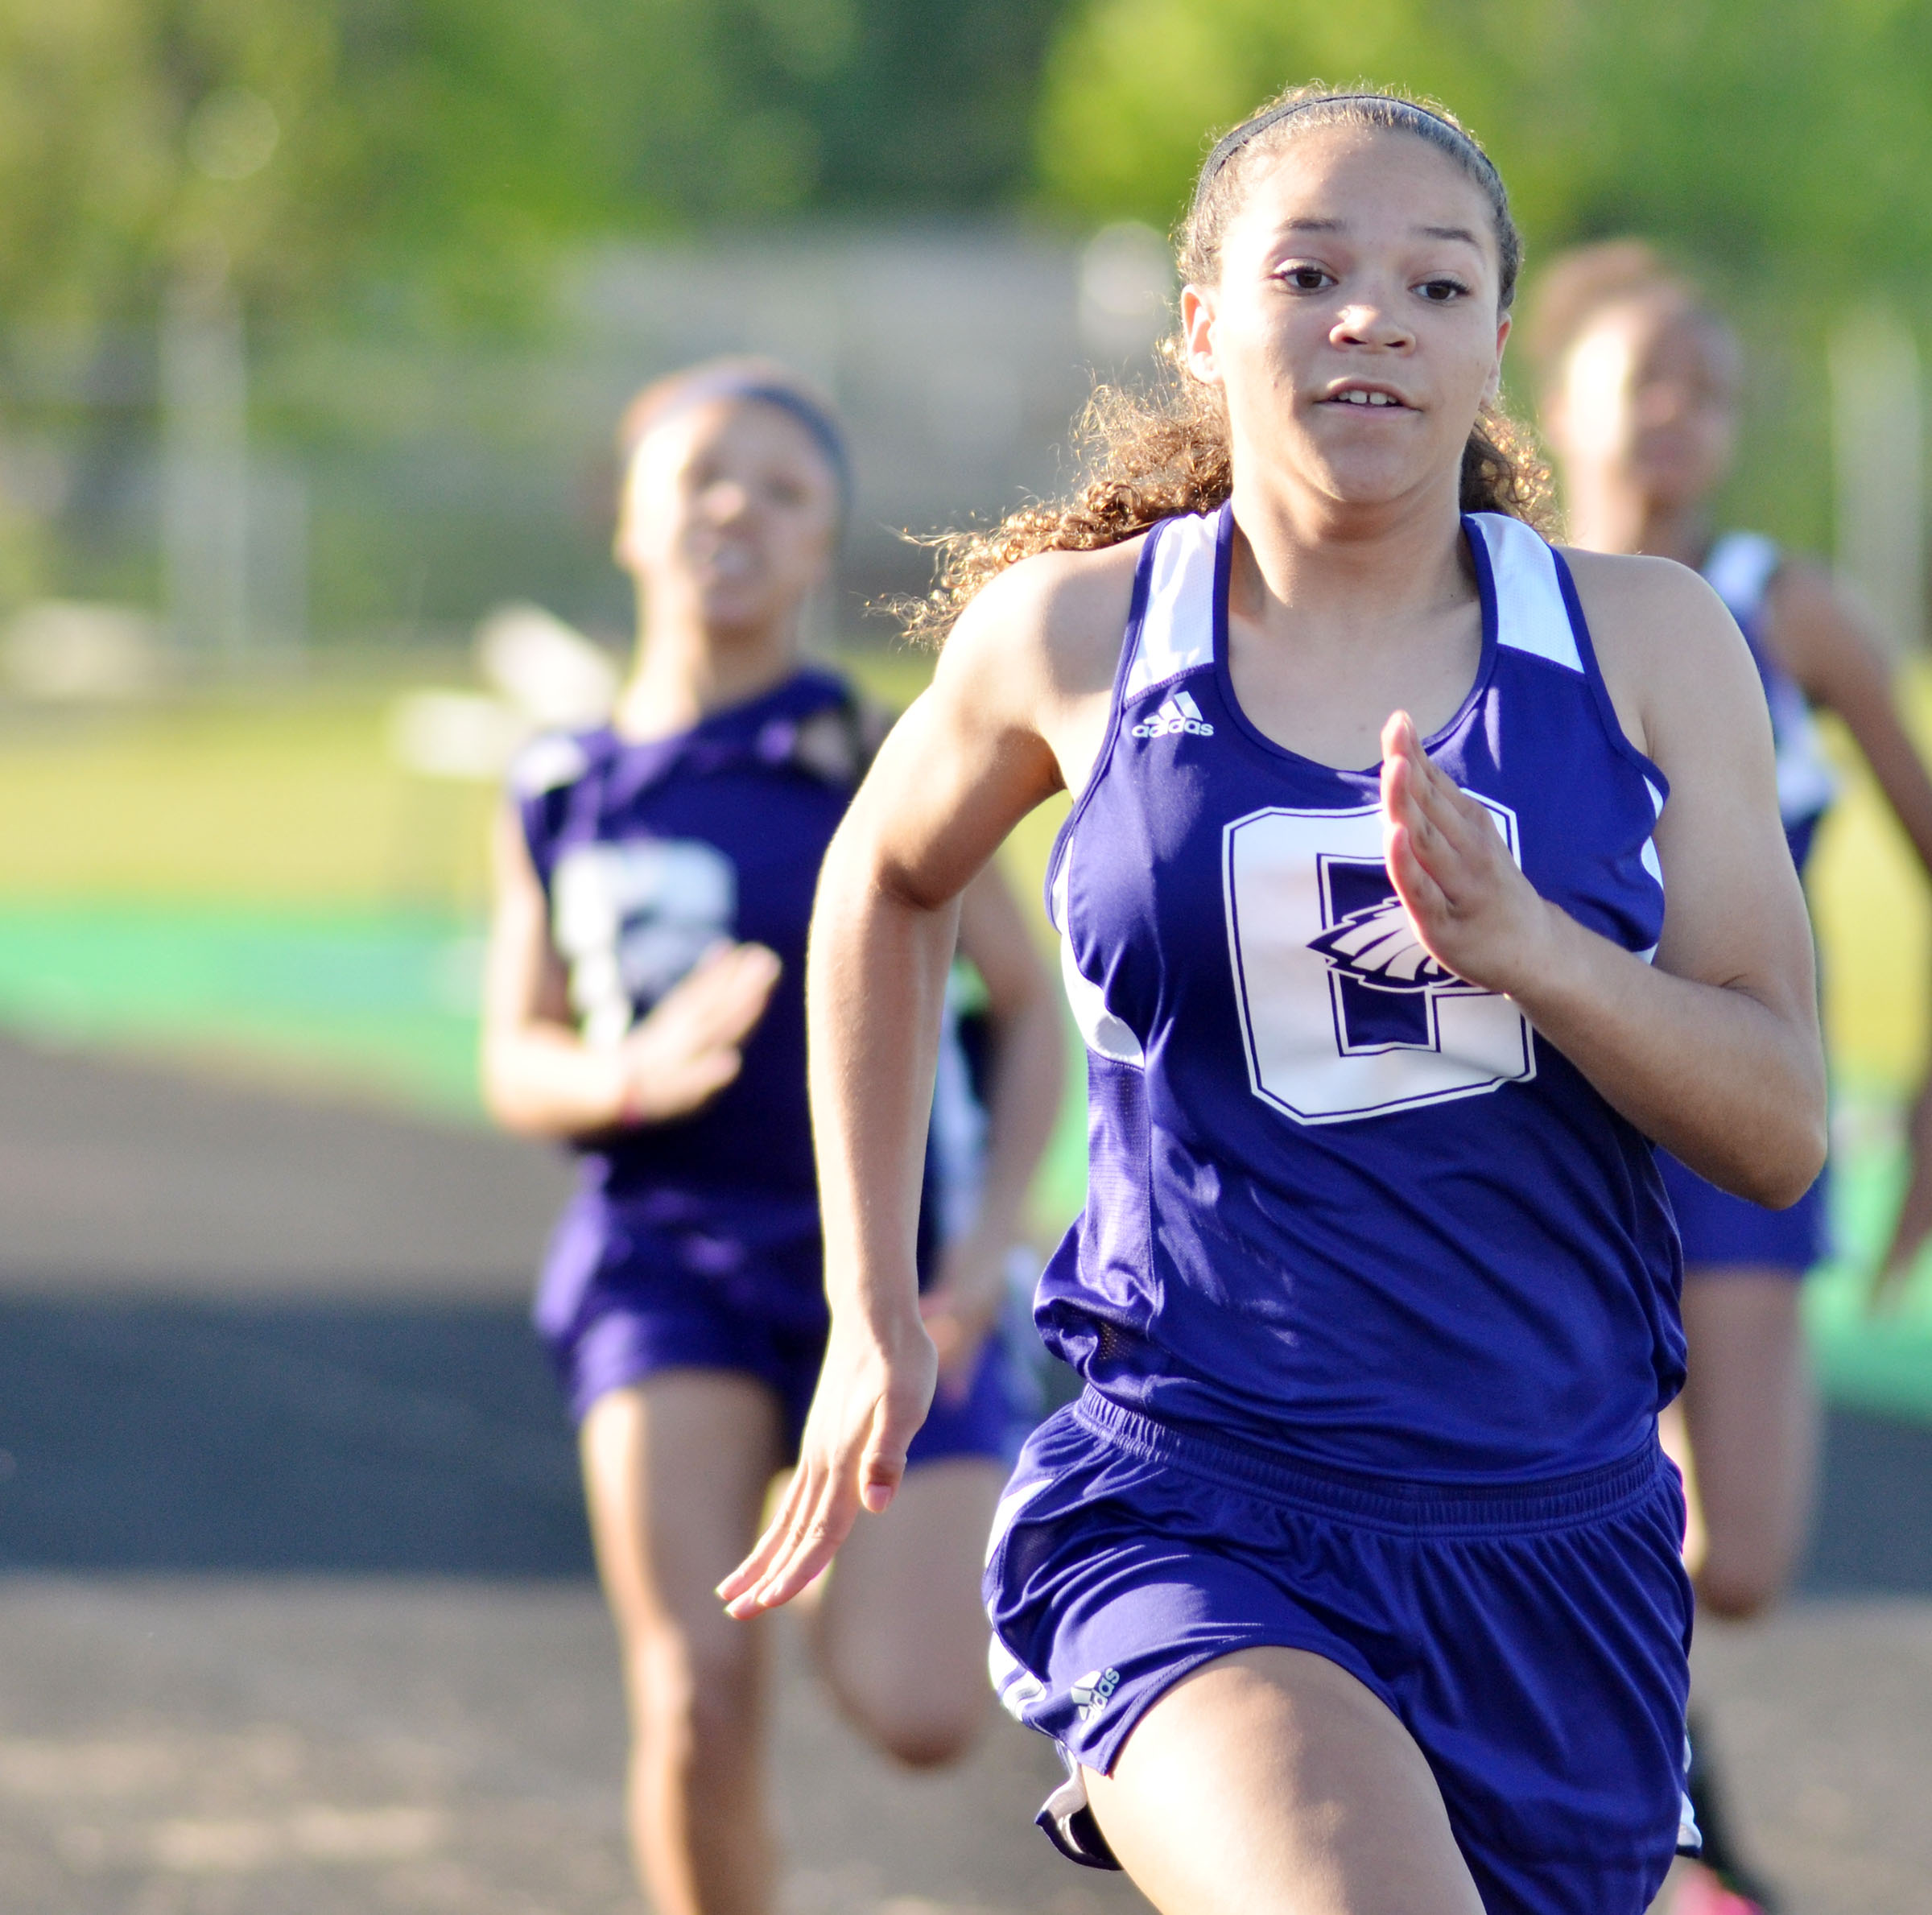 CHS freshman Taliyah Hazelwood finished 11th and 10th in the 100- and 200-meter dashes, respectively.